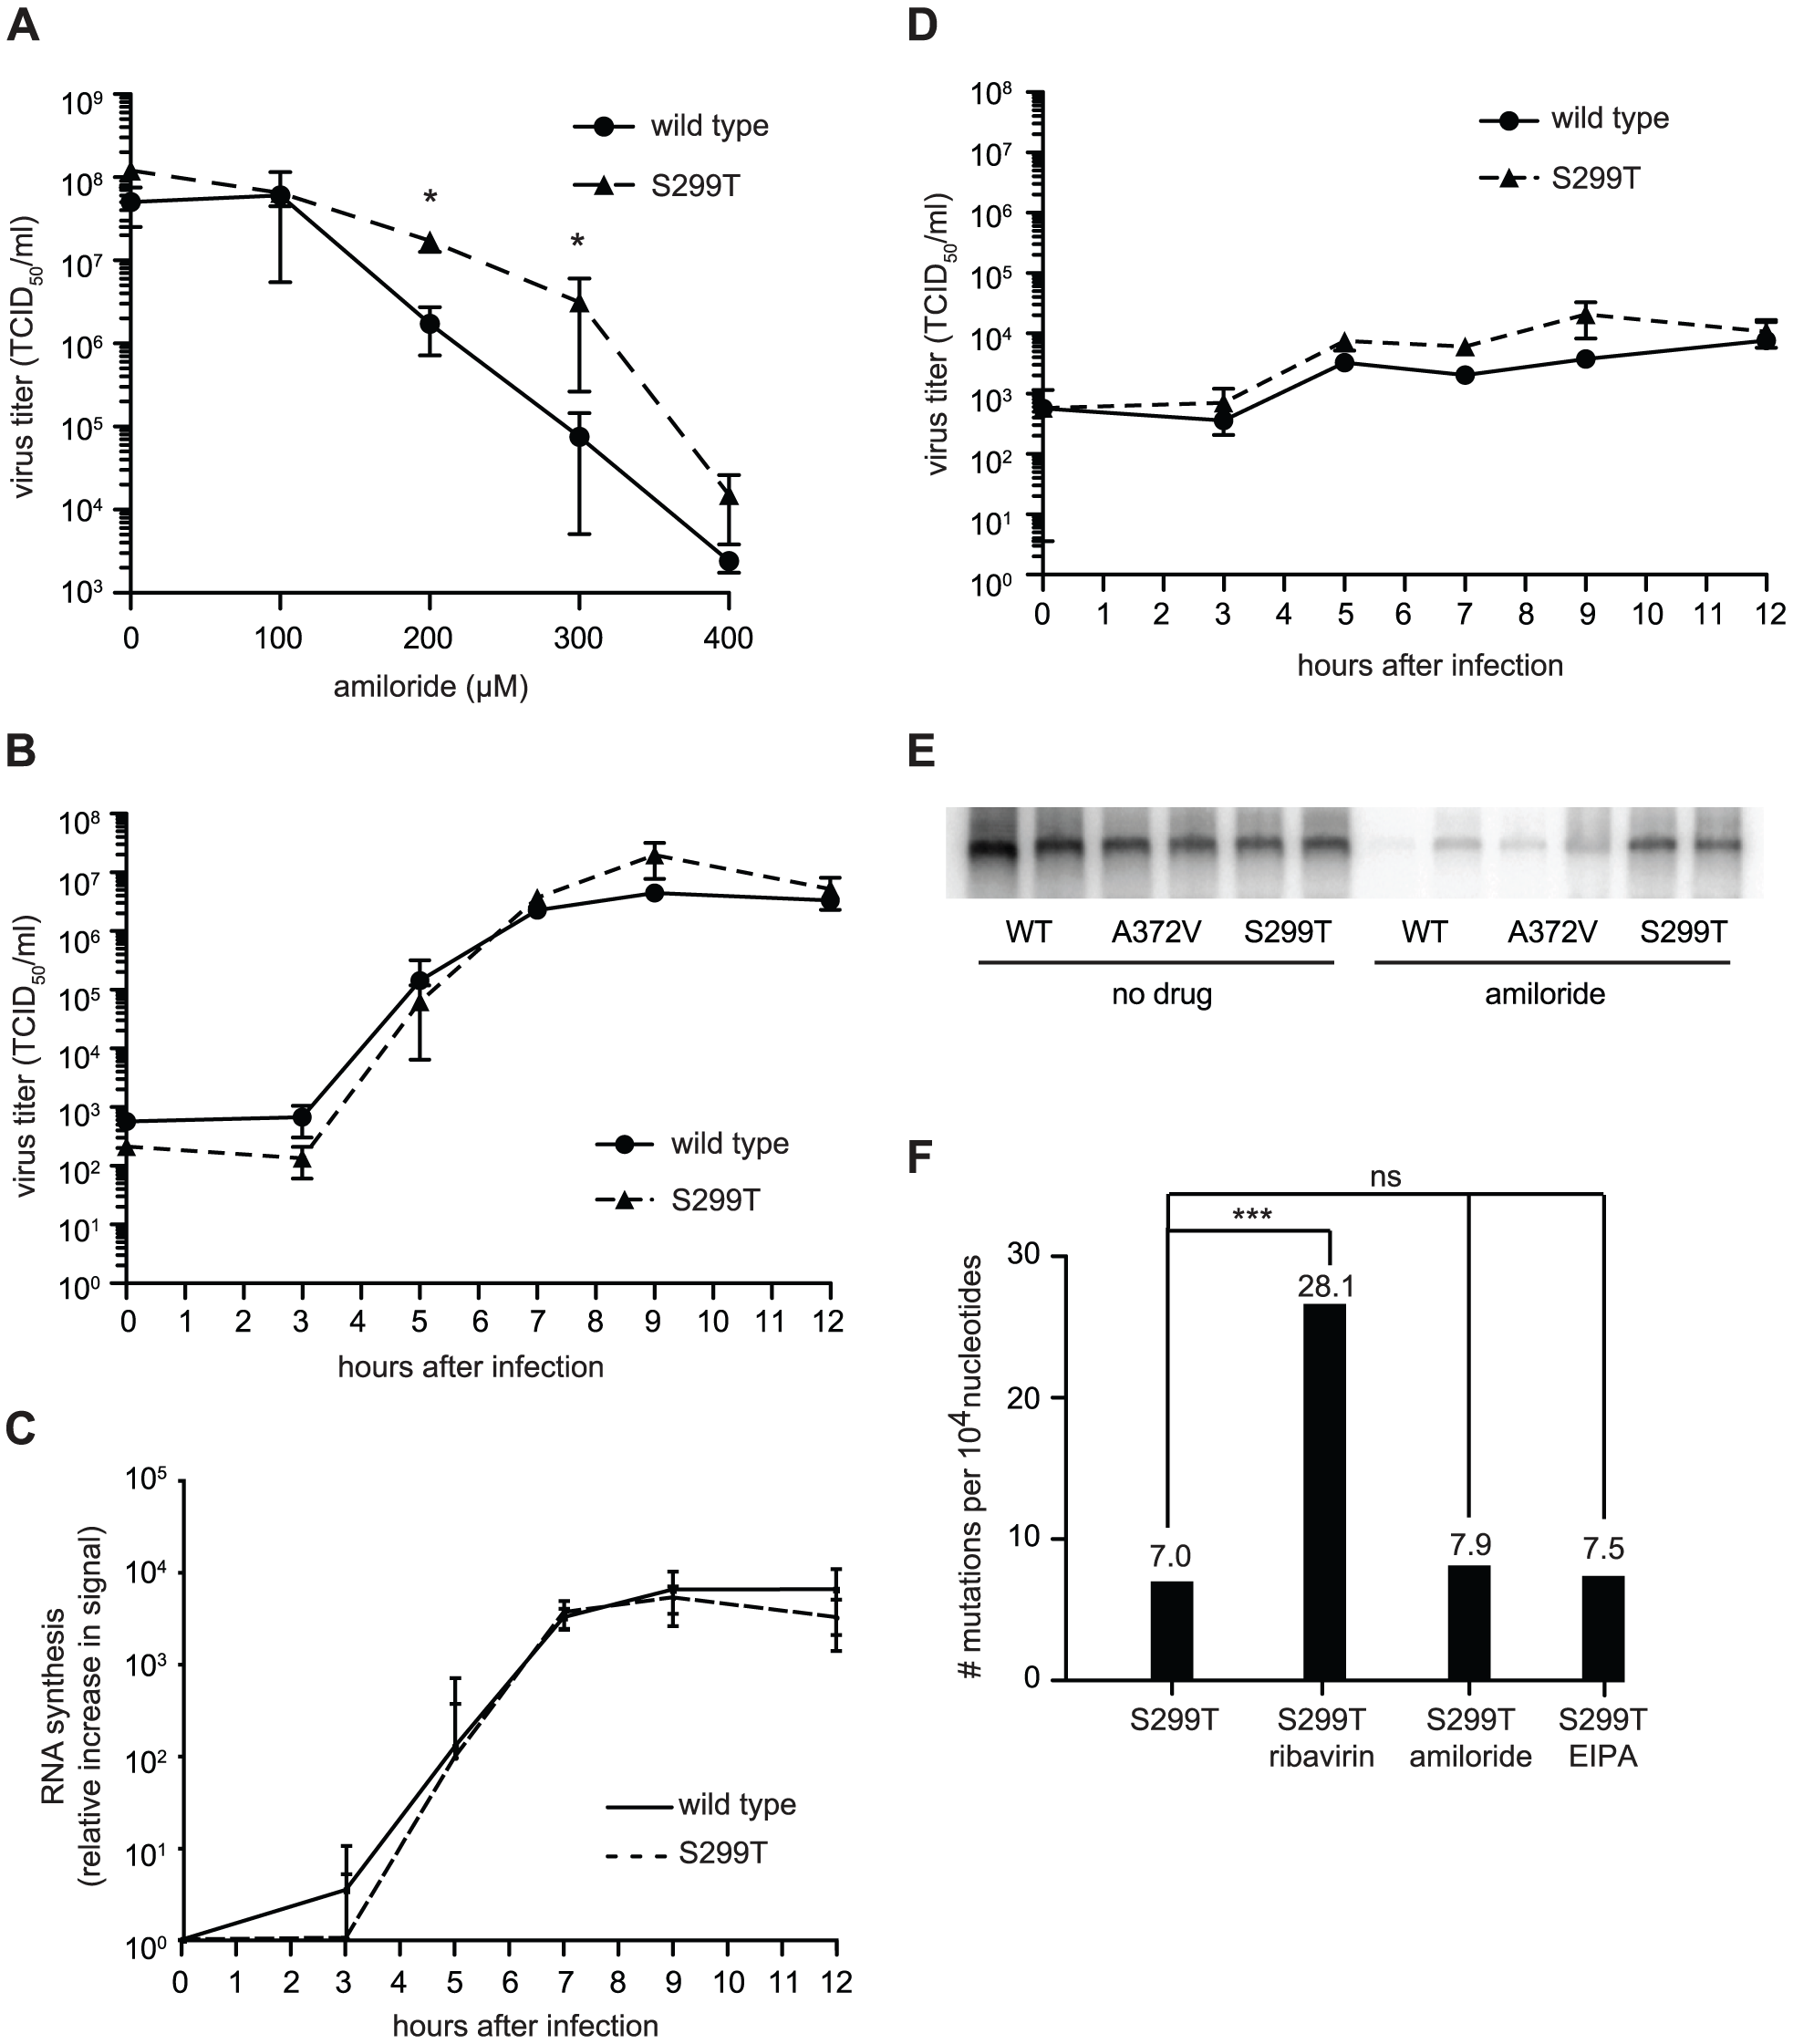 Another polymerase variant, S299T, is resistant to both the inhibitory effect of amiloride on RNA synthesis as well as its mutagenic activity.